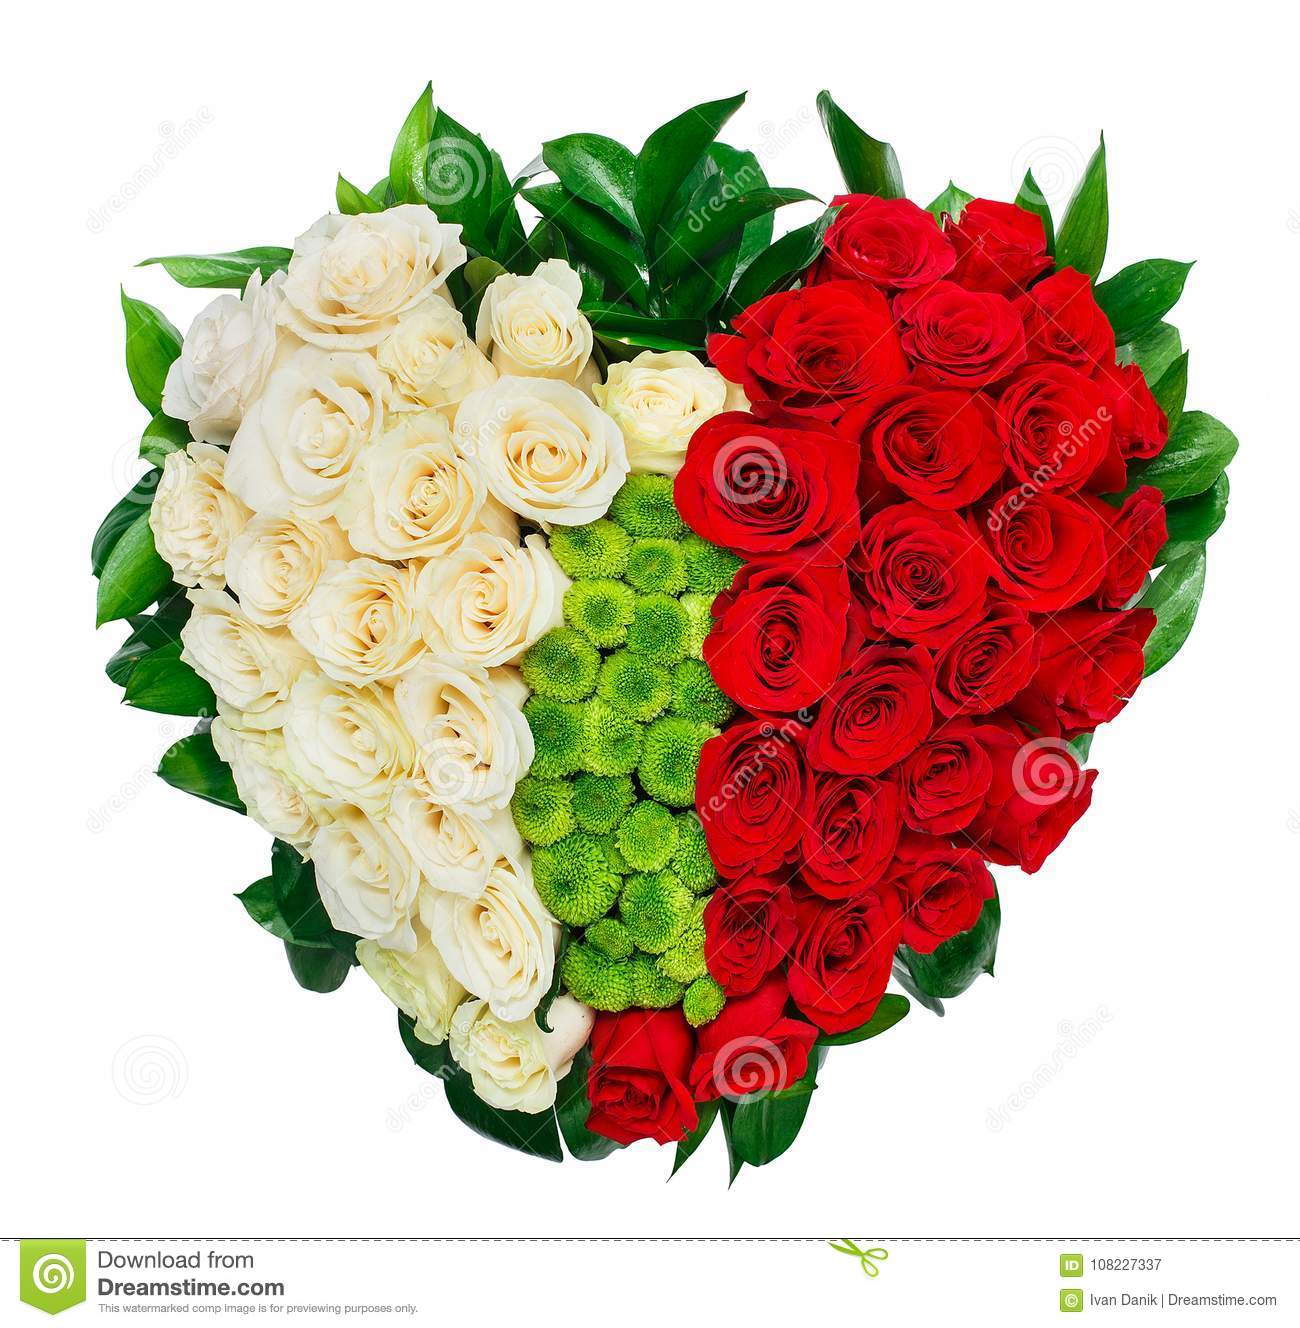 Heart Shaped Bouquet Of Red Roses Stock Image - Image of floral ...